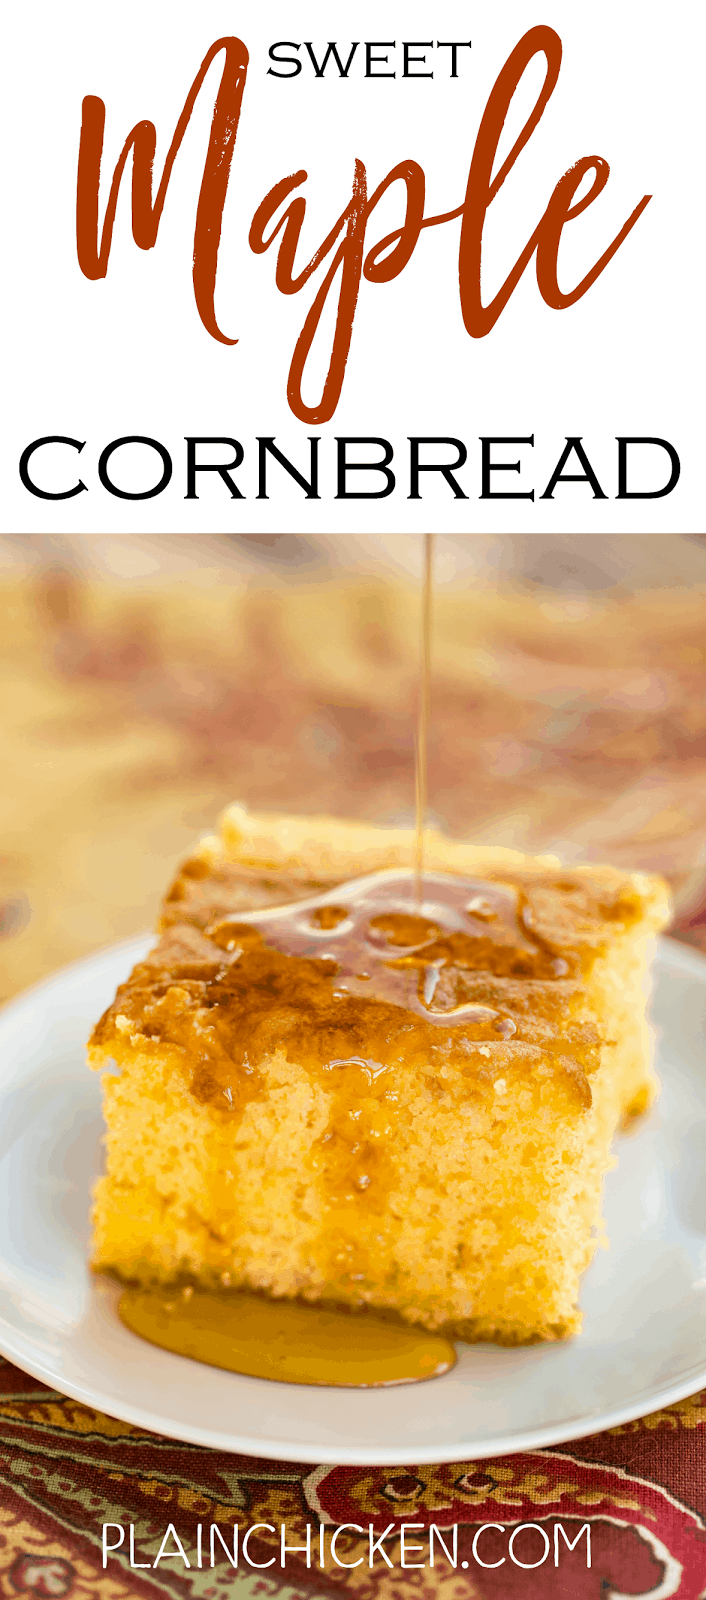 Sweet Maple Cornbread - CRAZY good!! Cake mix, Martha White Sweet Yellow Cornbread Mix, eggs, water, oil and real Maple Syrup. Makes a ton! Great for potlucks and the holidays! Everyone went back for seconds. SO good!